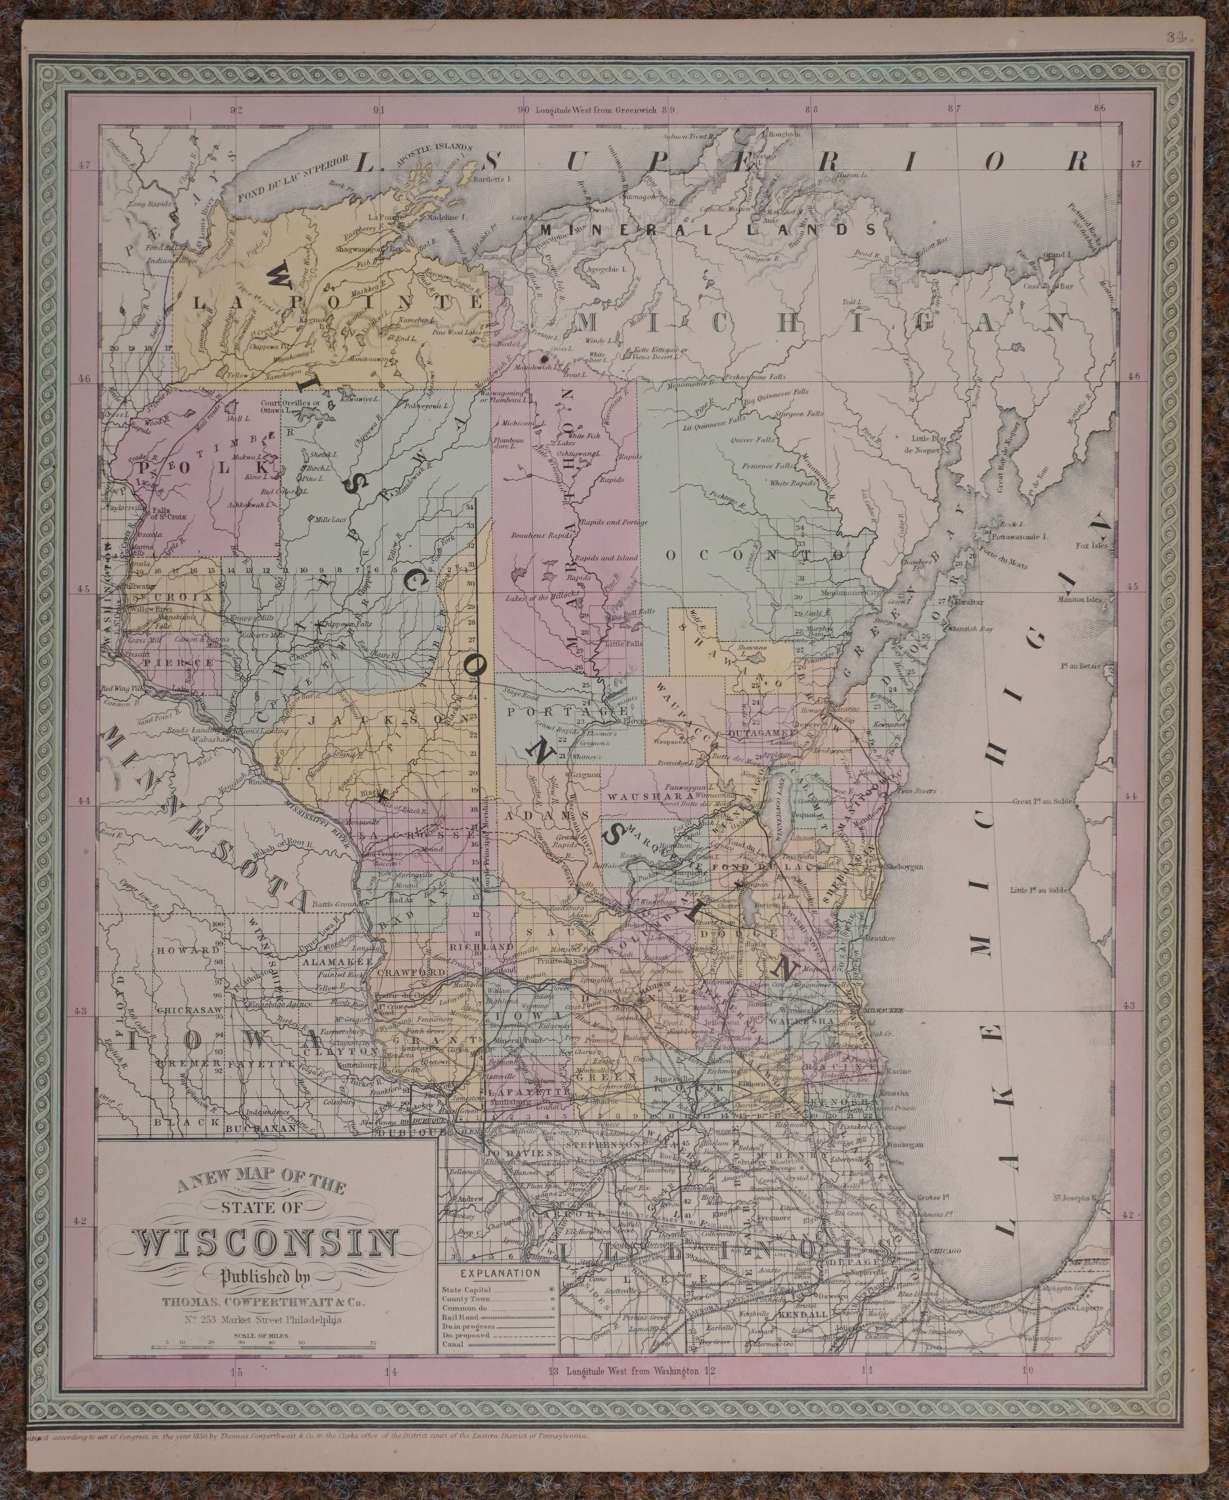 A New Map of the State of Wisconsin by Thomas Cowperthwait & Co